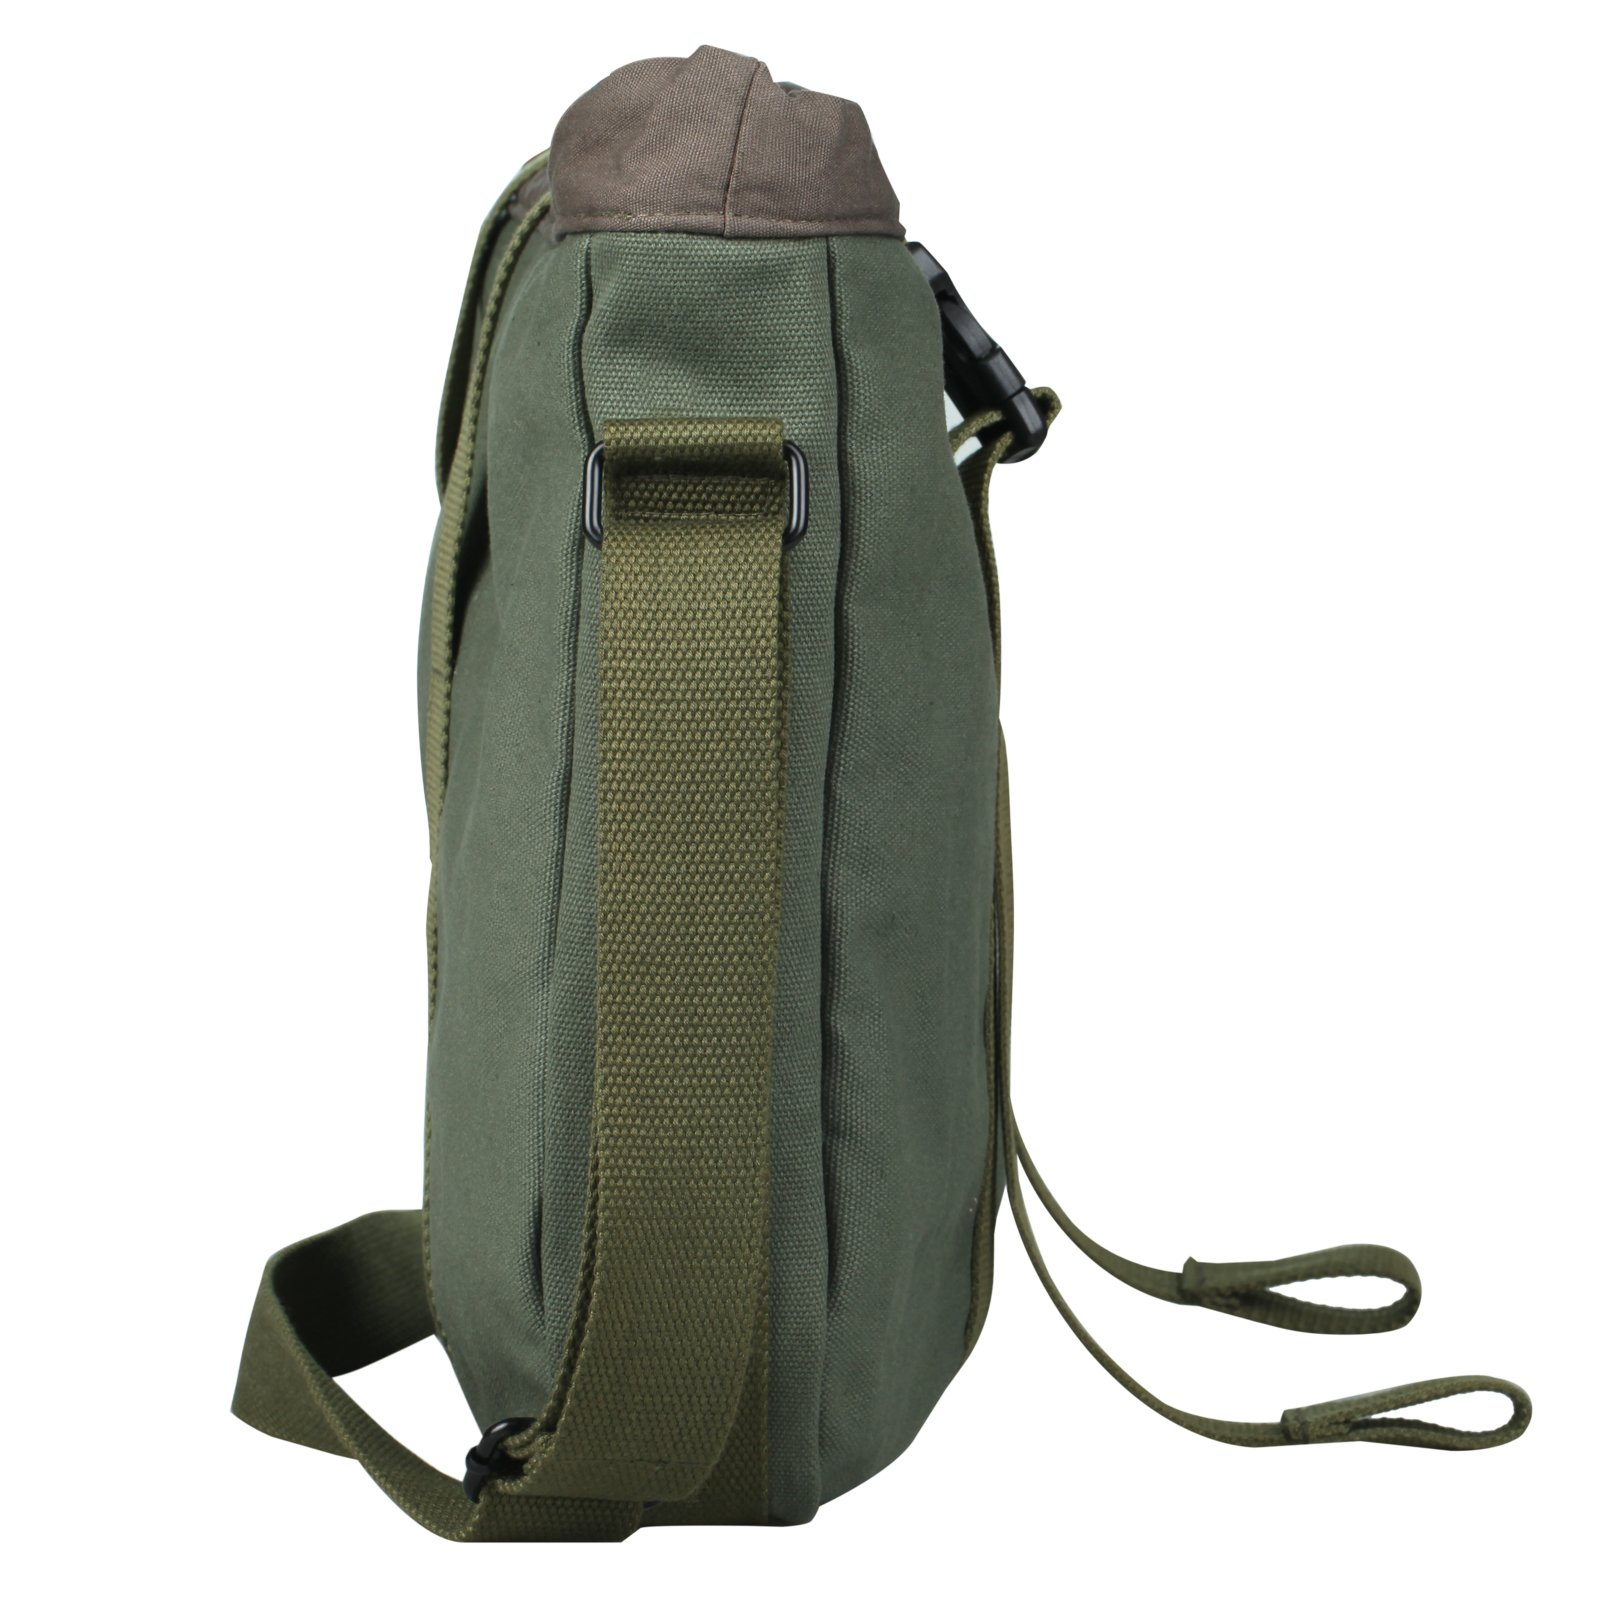 Superzero Water Resistant Canvas Messenger Shoulder Bag For MenWomen,Vintage Business Laptop Computer Bag Fit Laptops 13'', 14'' and up to 15.6 Inches by Superzero (Image #2)